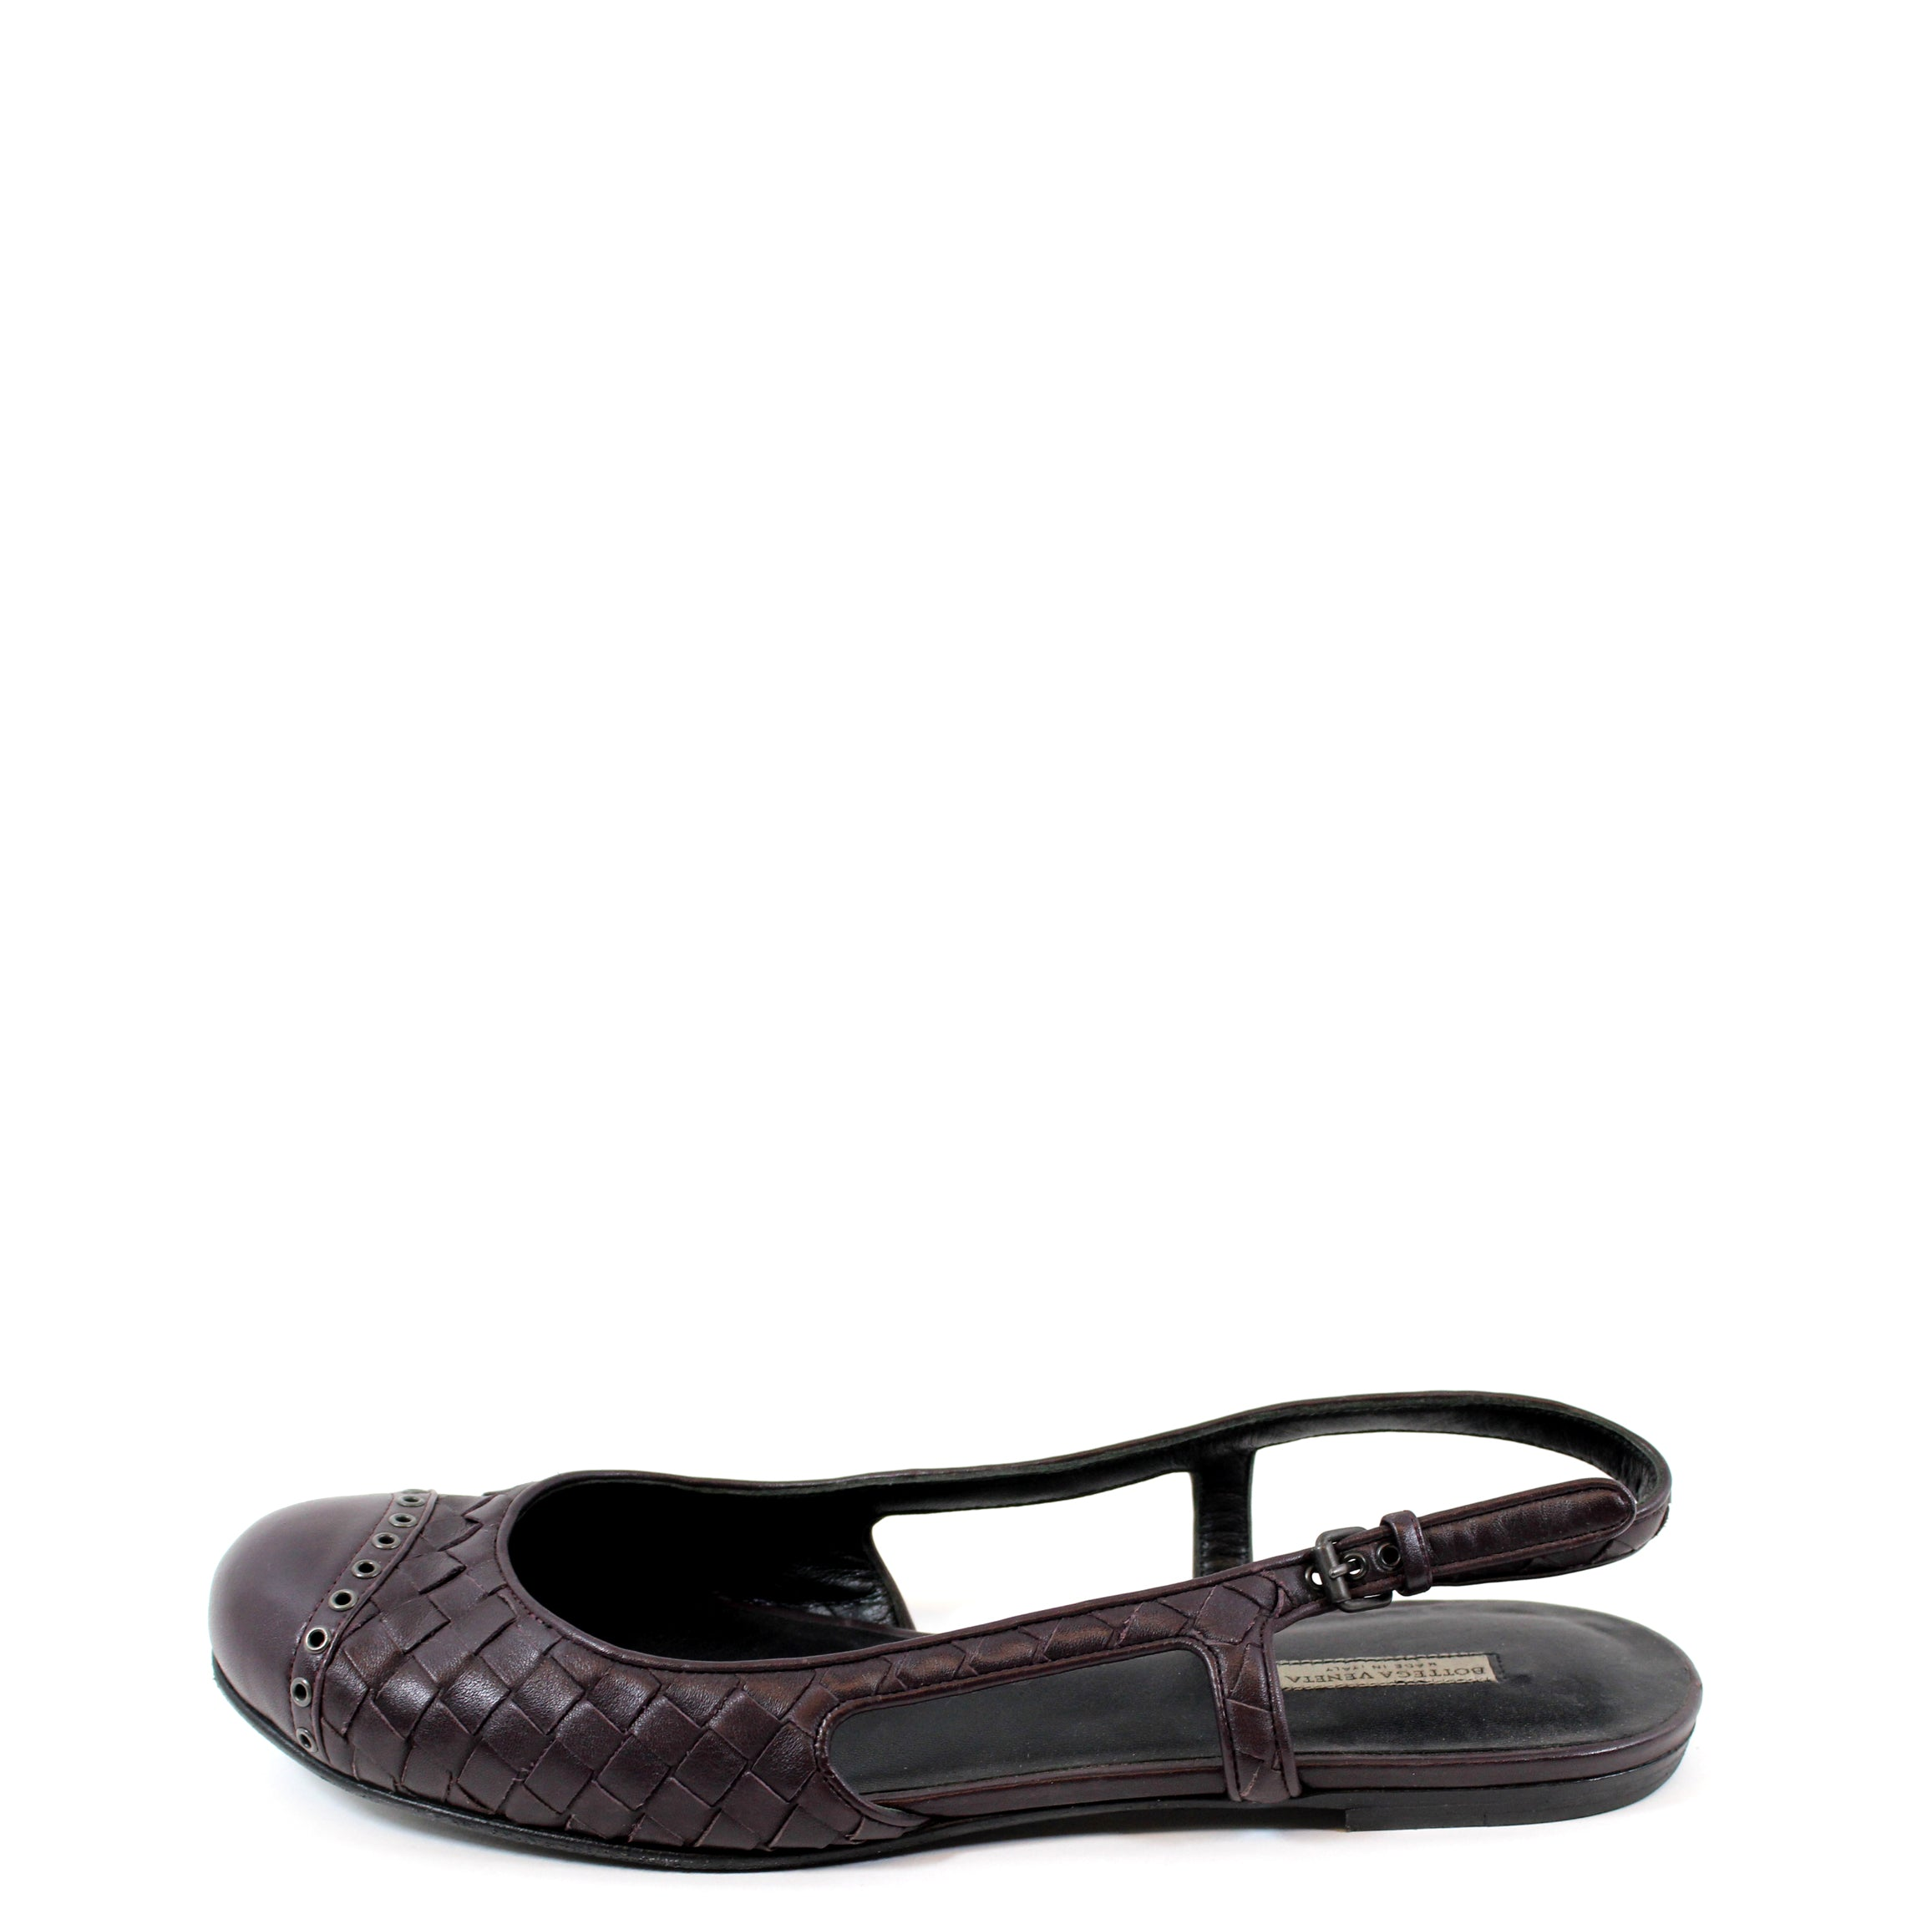 edc09046adc6 Bottega Veneta Eggplant Leather Woven Flats (Size 39.5) – Encore Resale.com